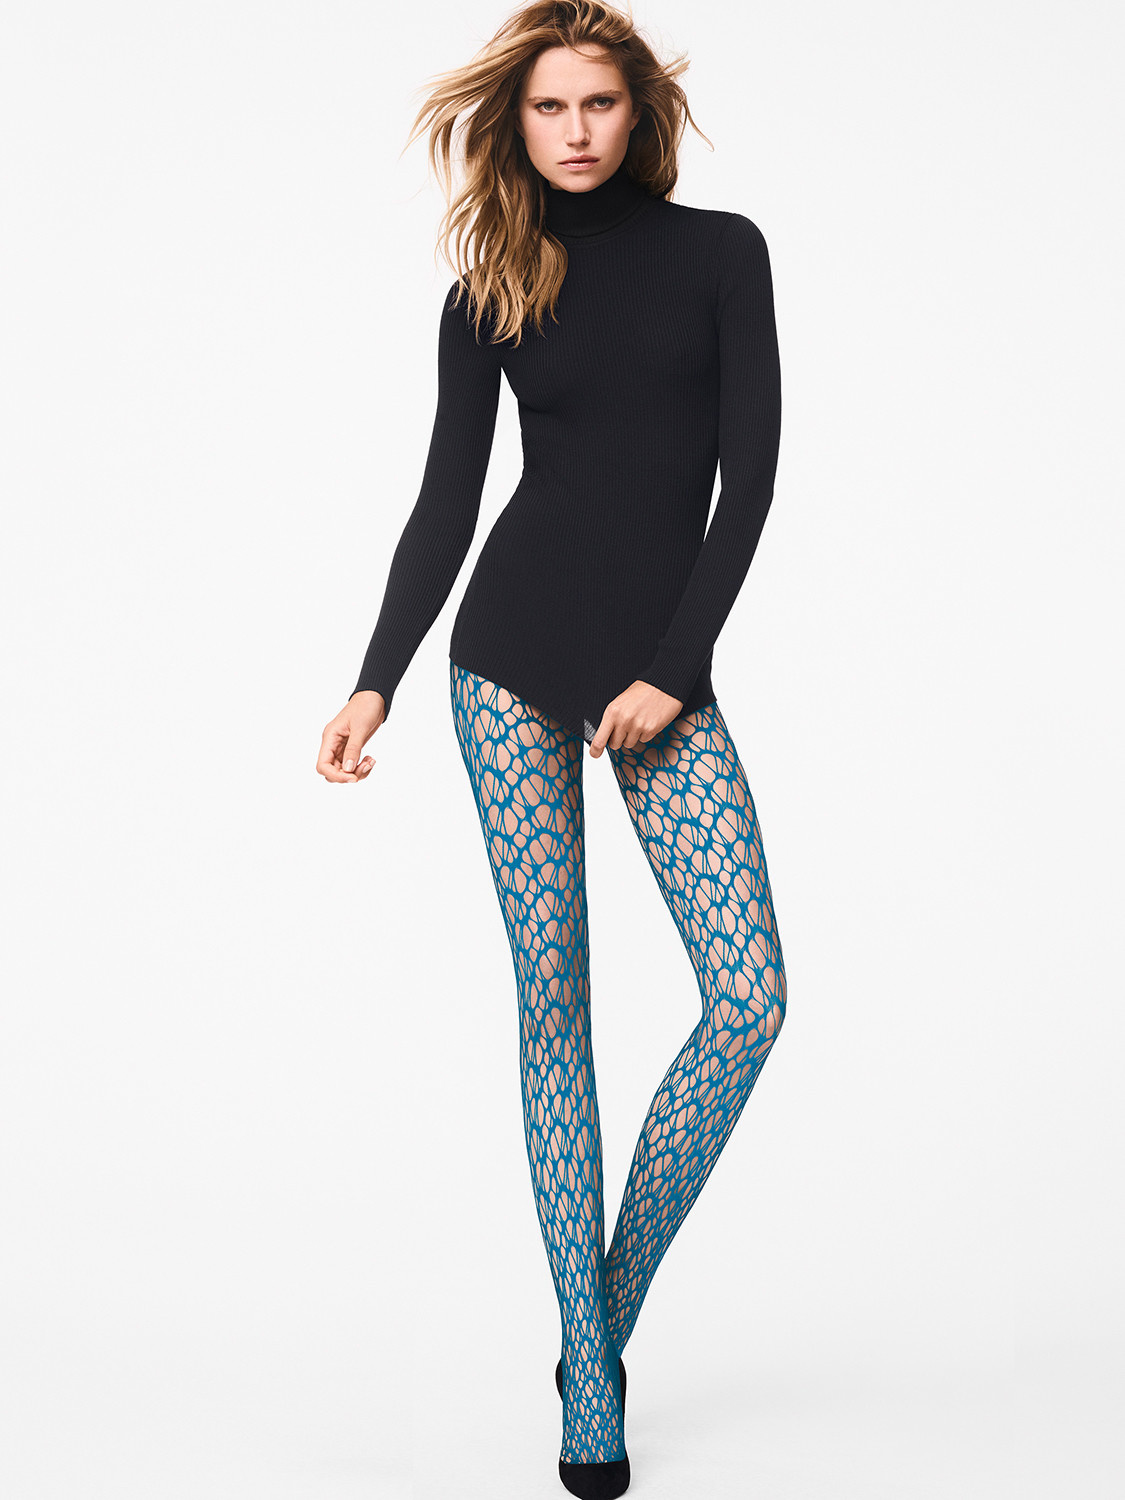 WOLFORD 19201 Net Tights